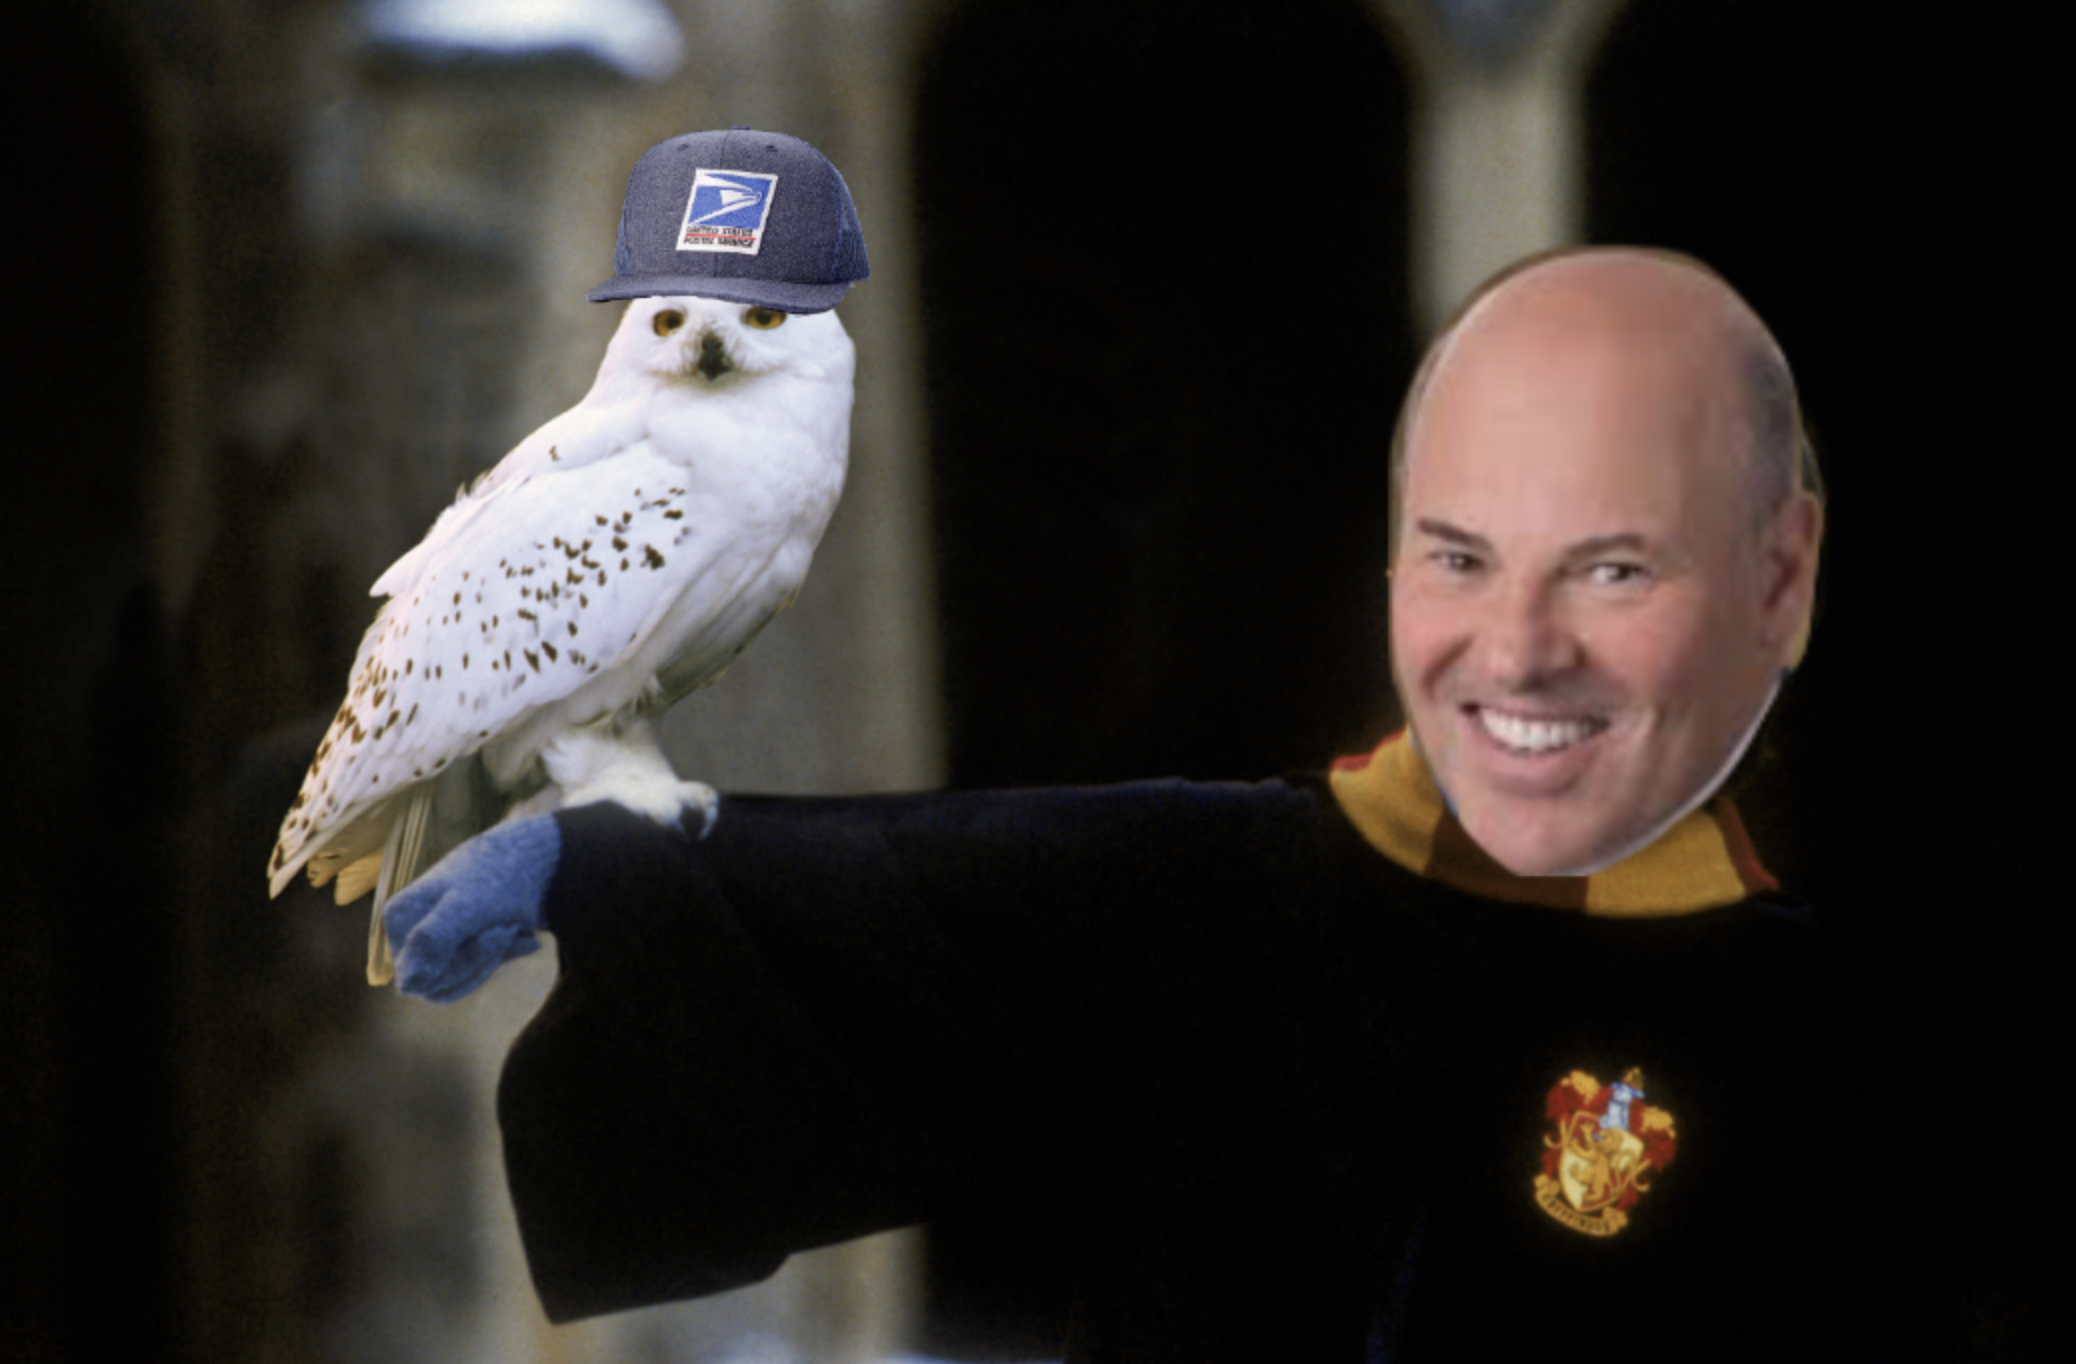 At USPS Congressional Hearing, Postmaster Commits to Fire Hedwig, Hires Pigwidgeon